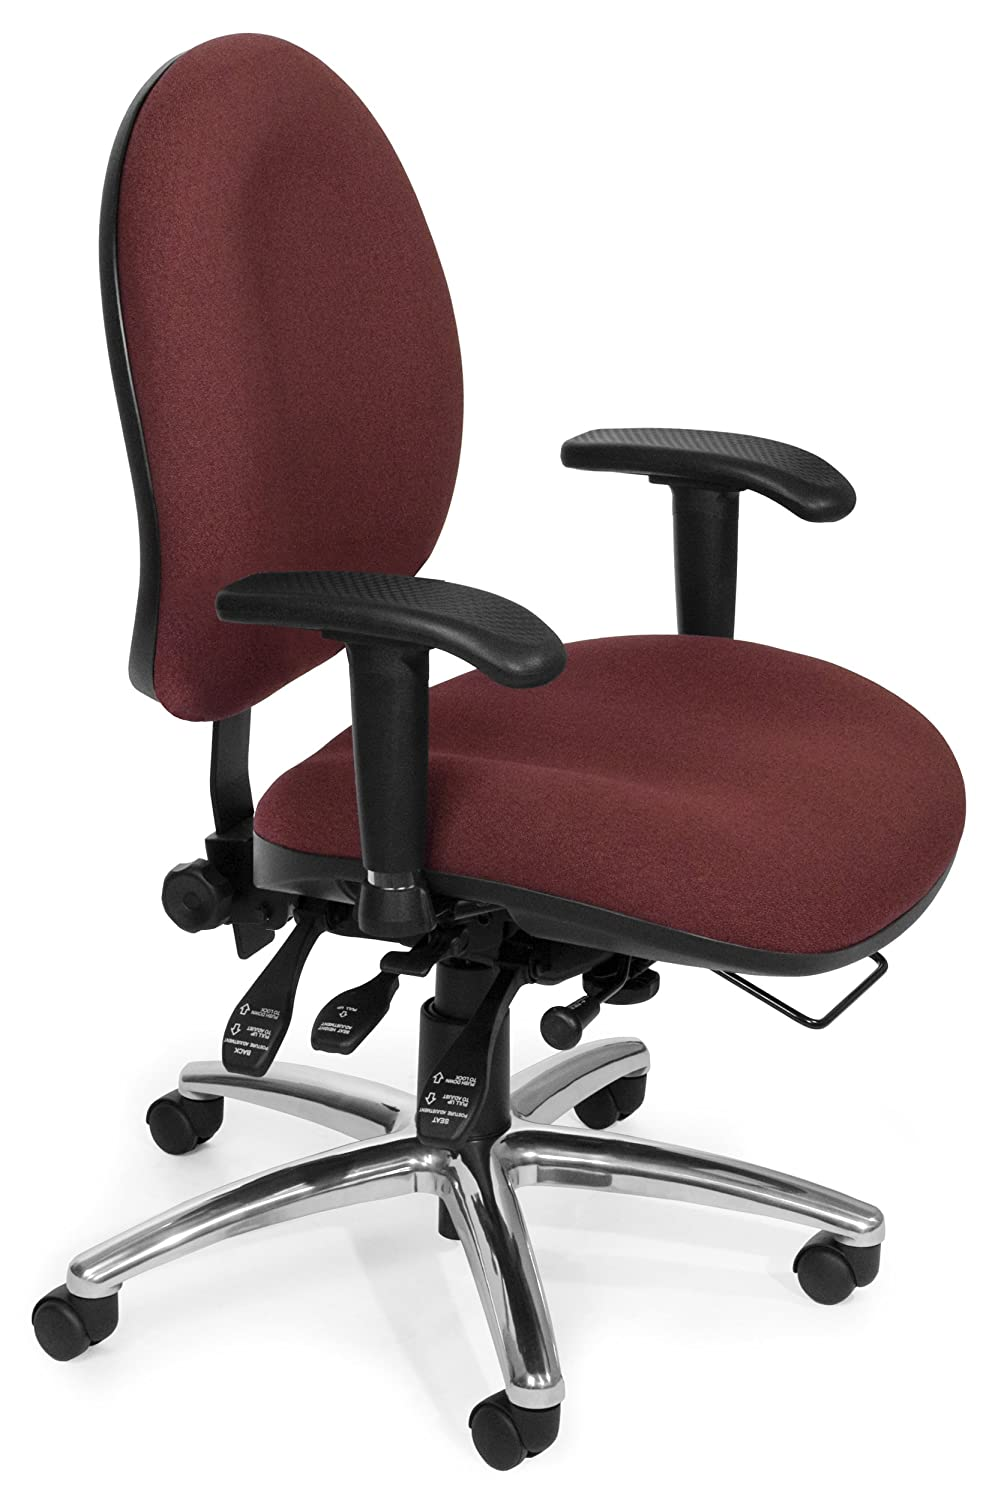 Amazoncom OFM Hour Ergonomic Upholstered Task Chair With Arms - Buy flash furniture kids car chair hr 10 red gg at beyond stores